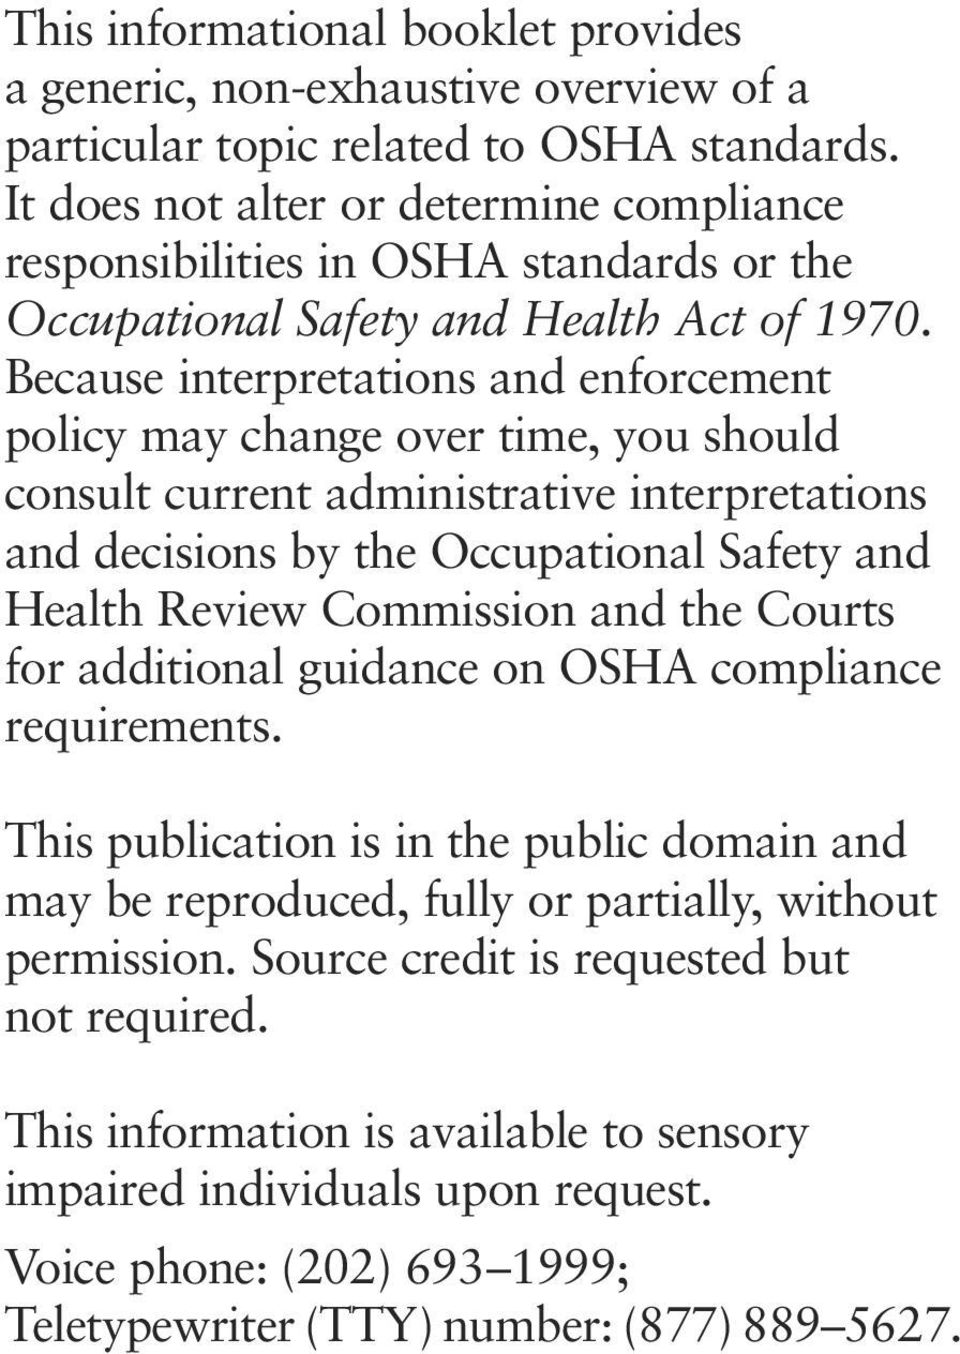 Because interpretations and enforcement policy may change over time, you should consult current administrative interpretations and decisions by the Occupational Safety and Health Review Commission